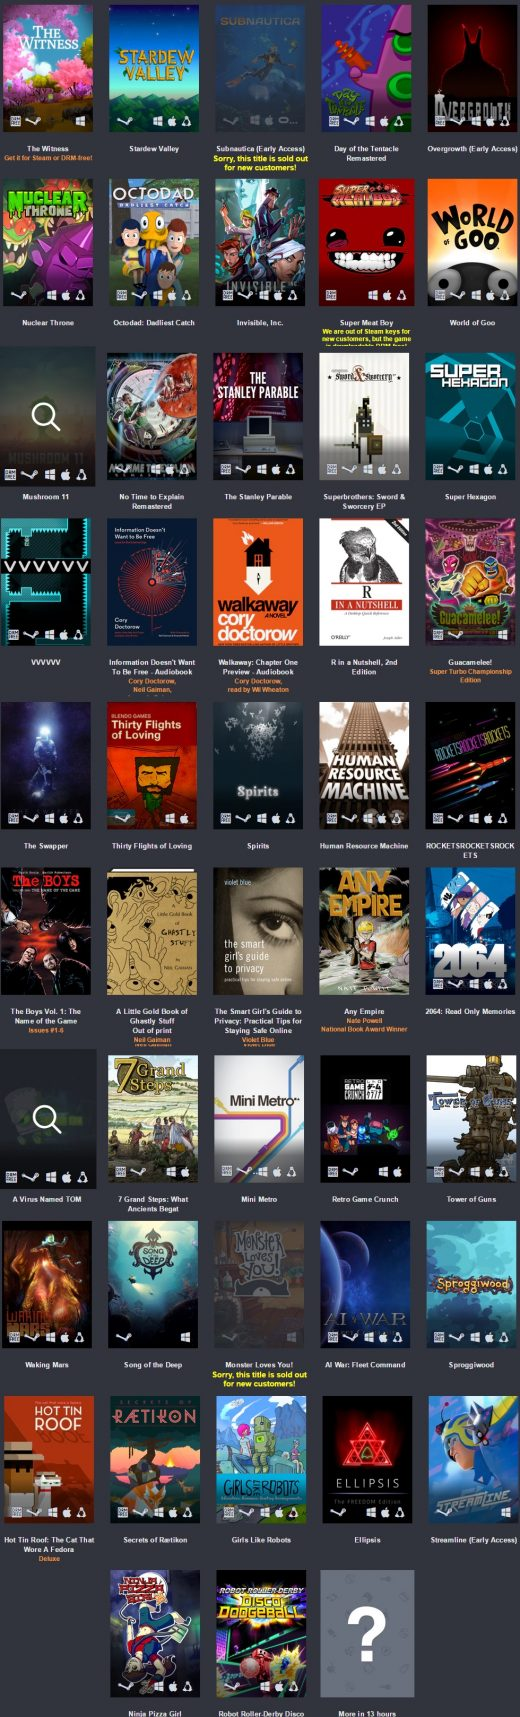 humble bundle freedom juegos